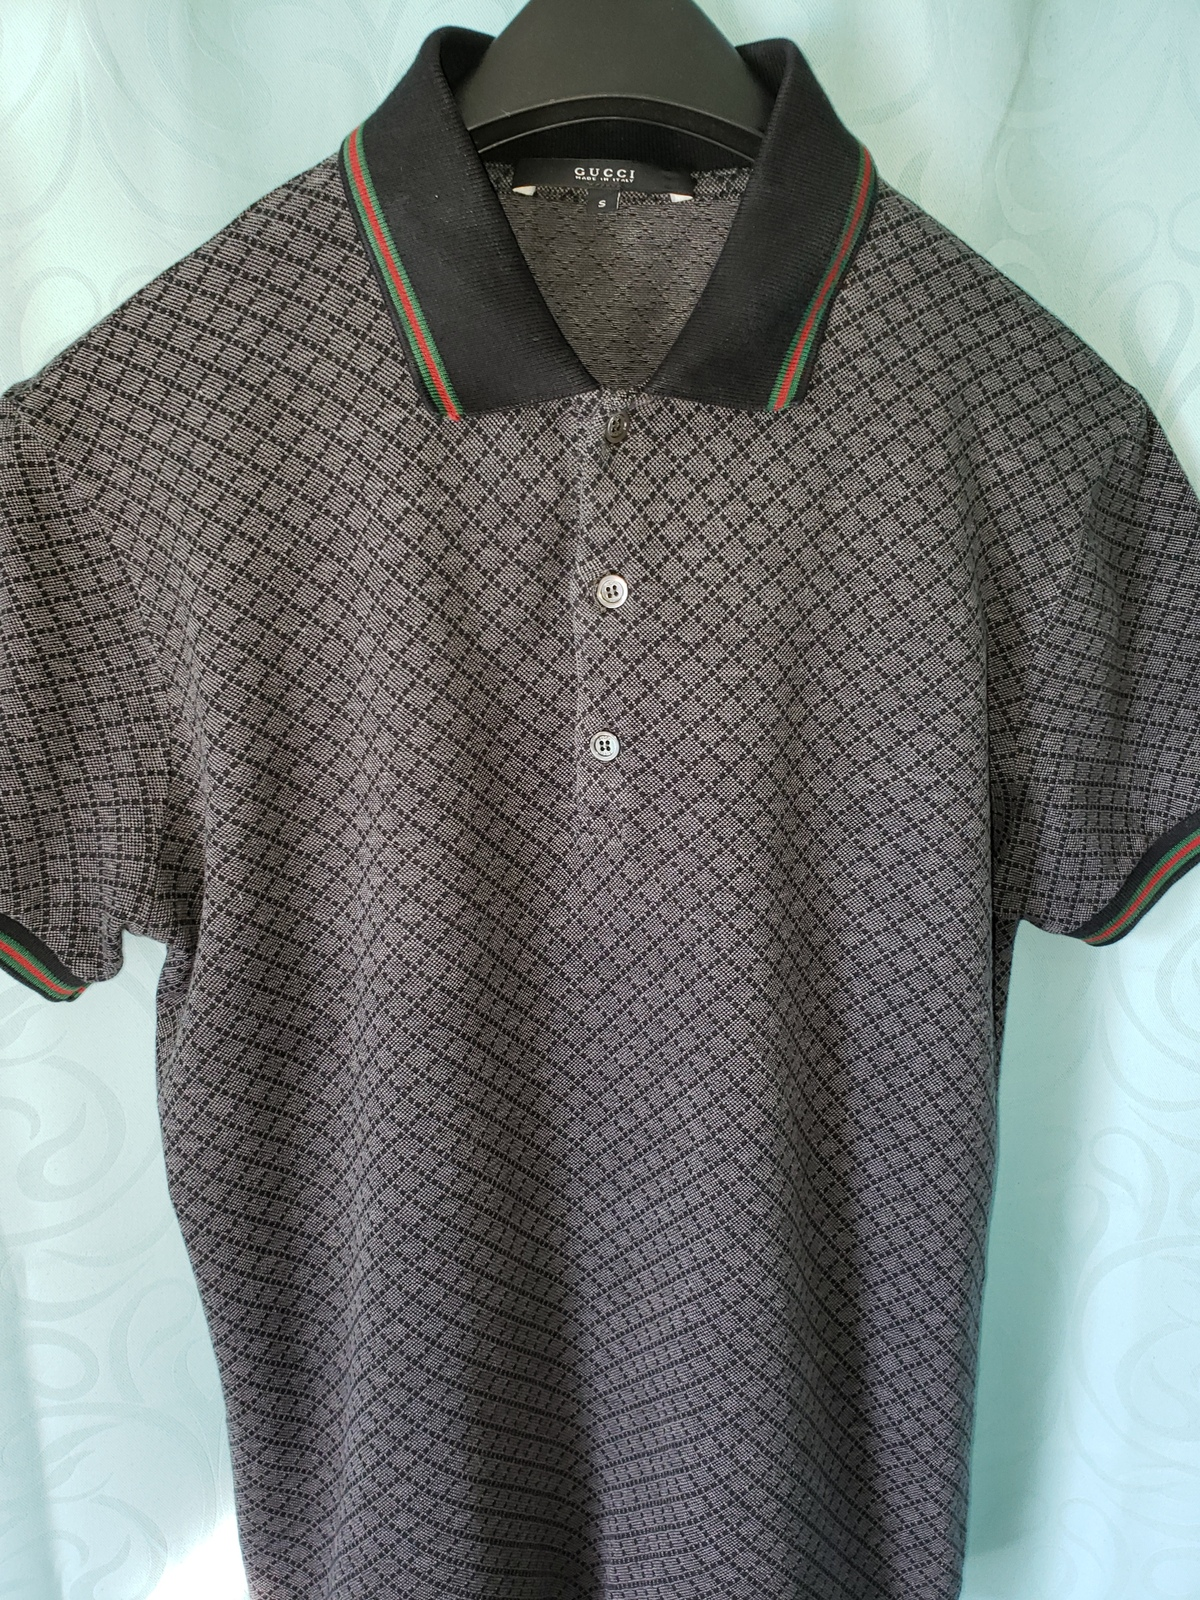 79489d9ccf4b Polo with Gucci patch Source · Gucci Polo Shirt 42 customer reviews and 5  listings